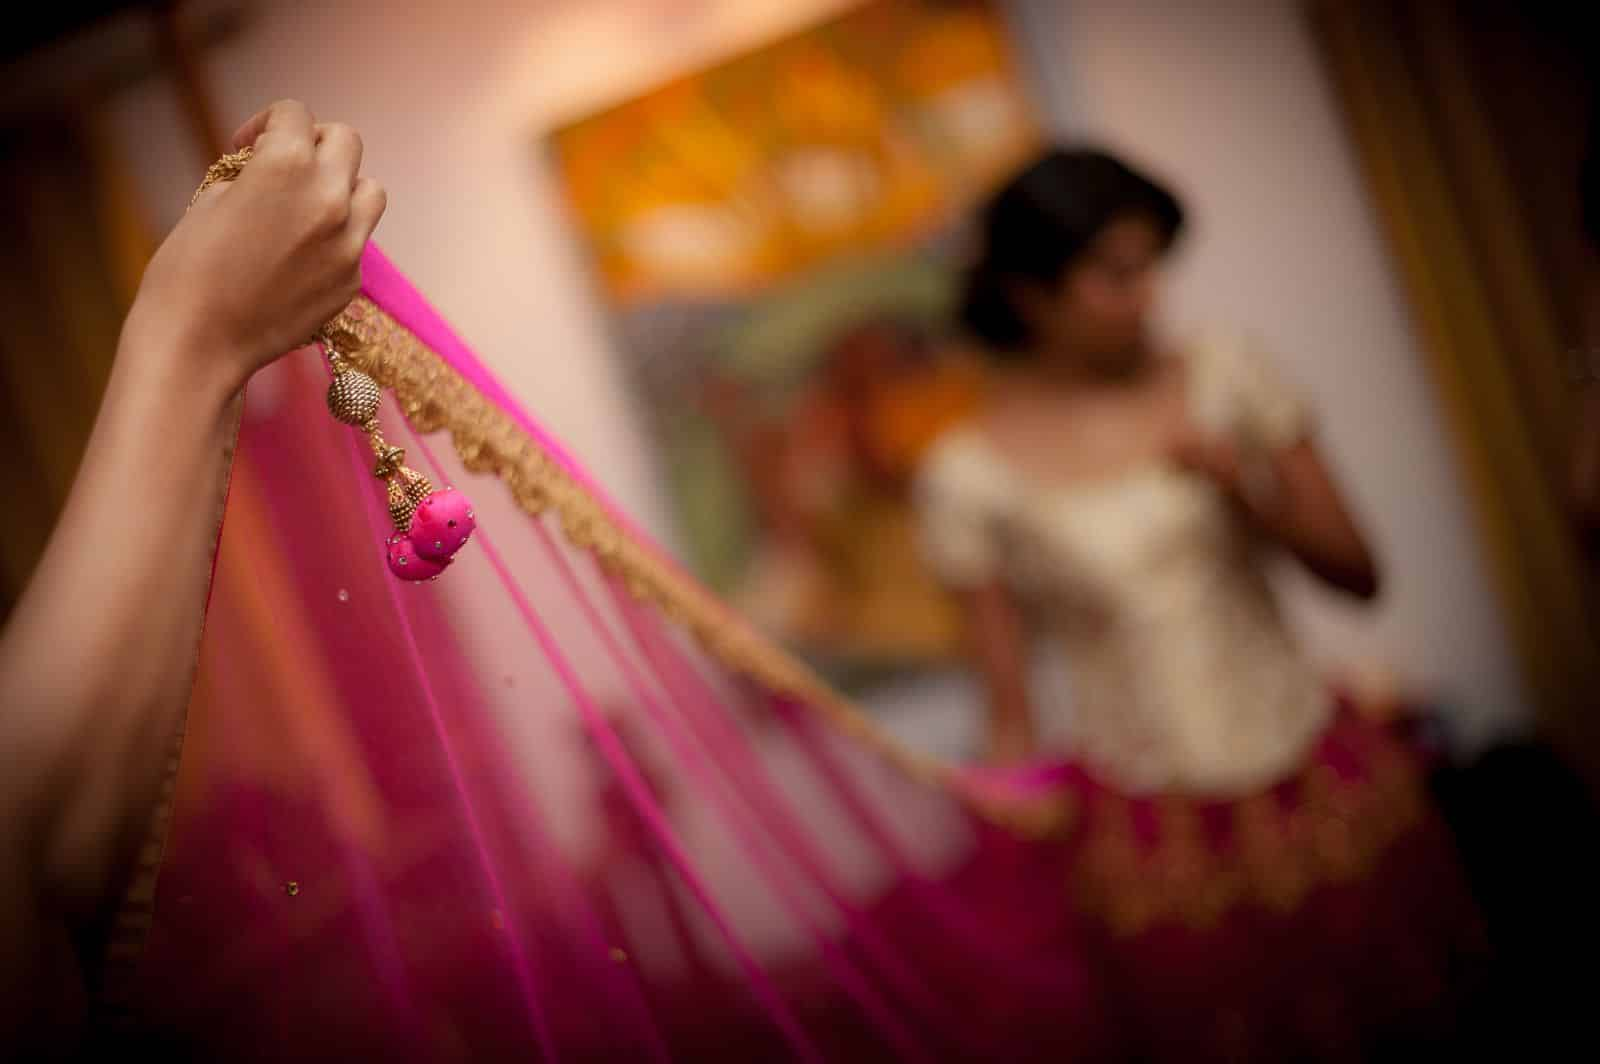 wedding-photography-bride-pink-dupatta-choli-lehenga-getting-ready